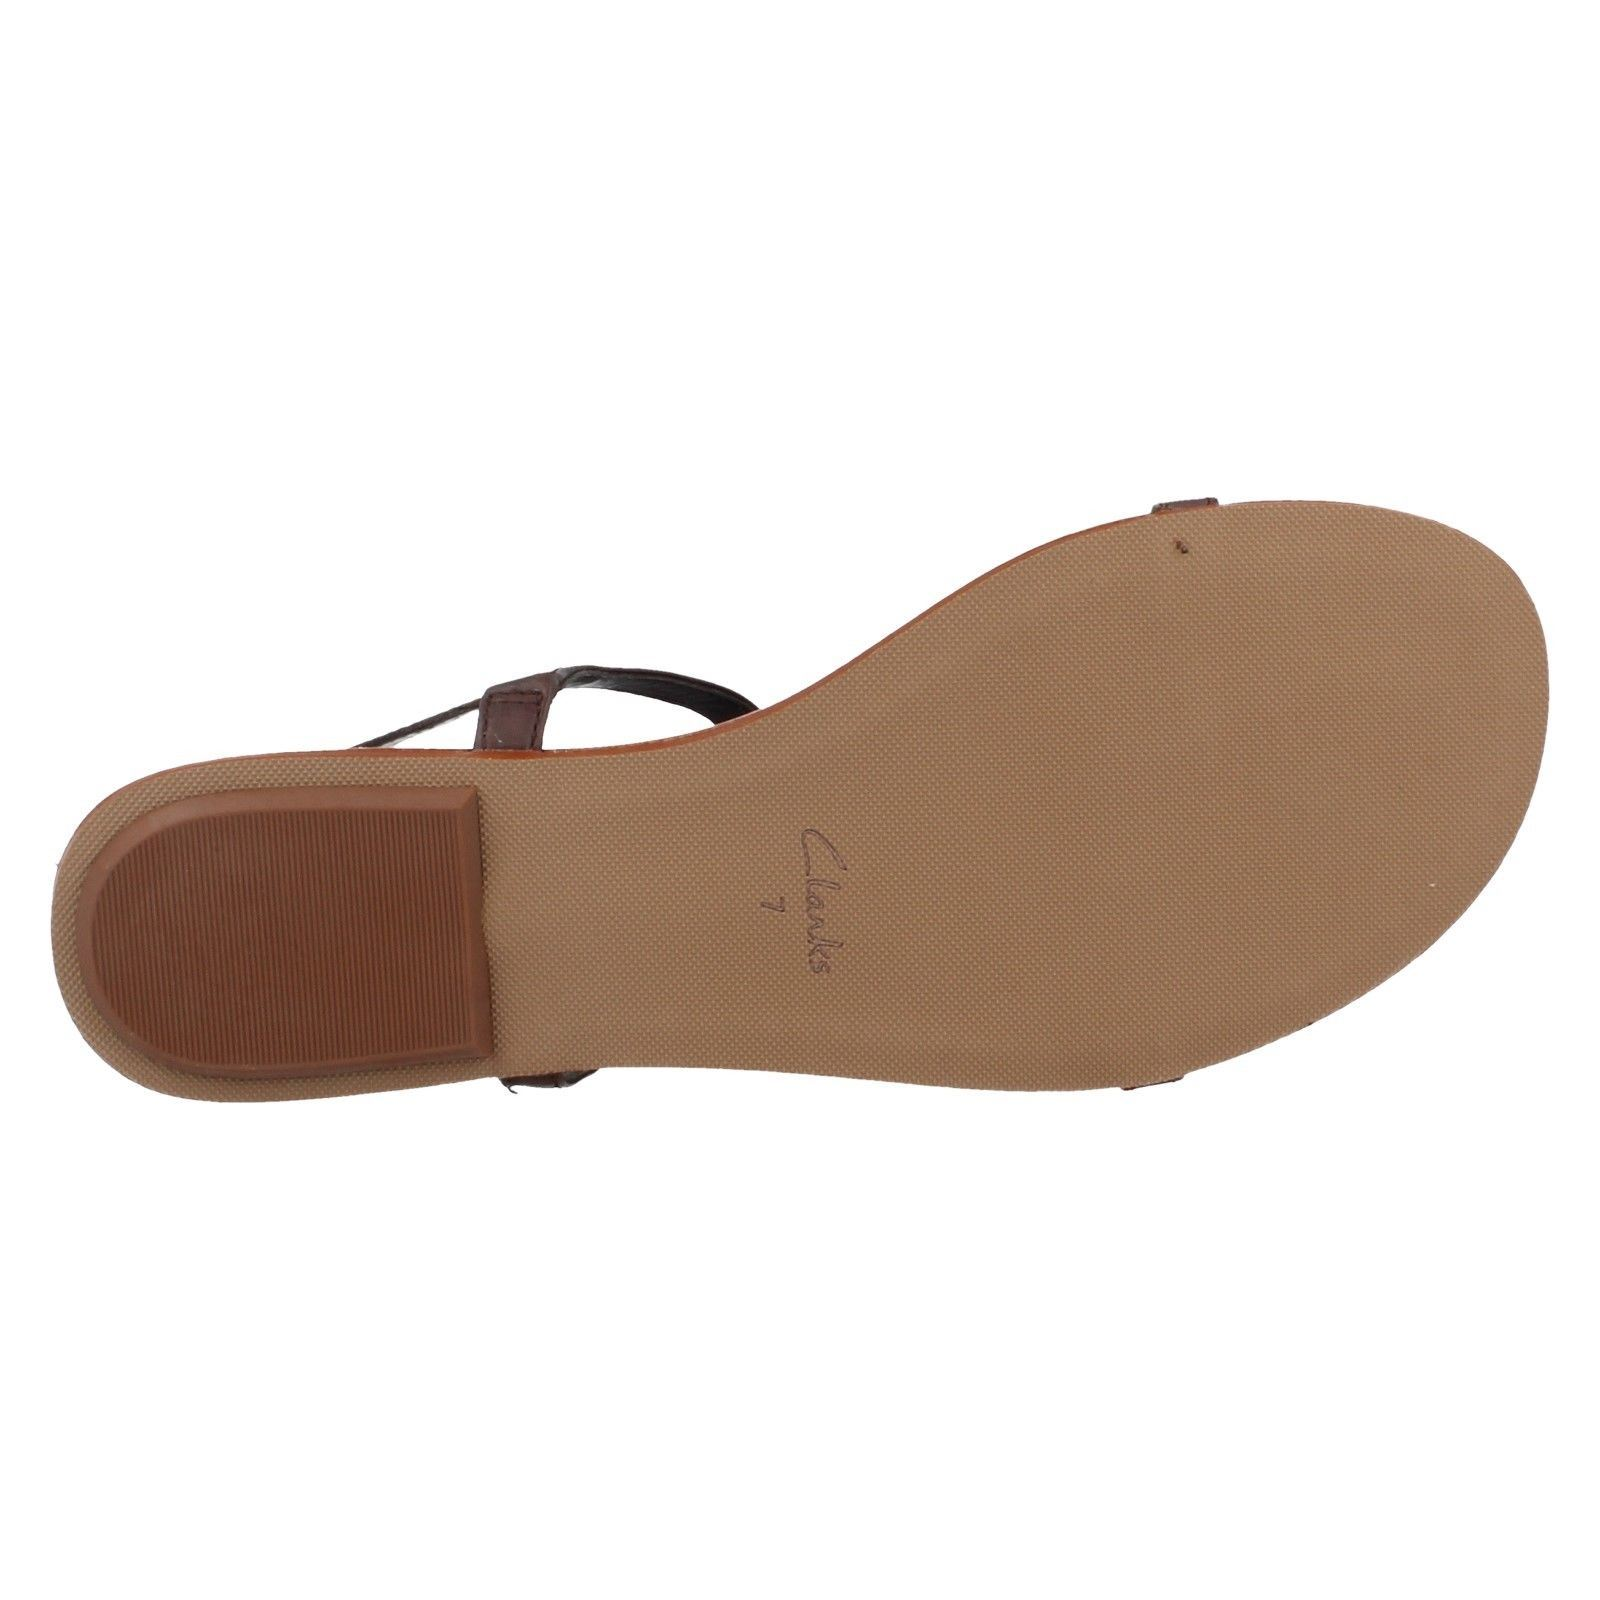 3e4a1a826cf2 Ladies Clarks Sandals Test Gem